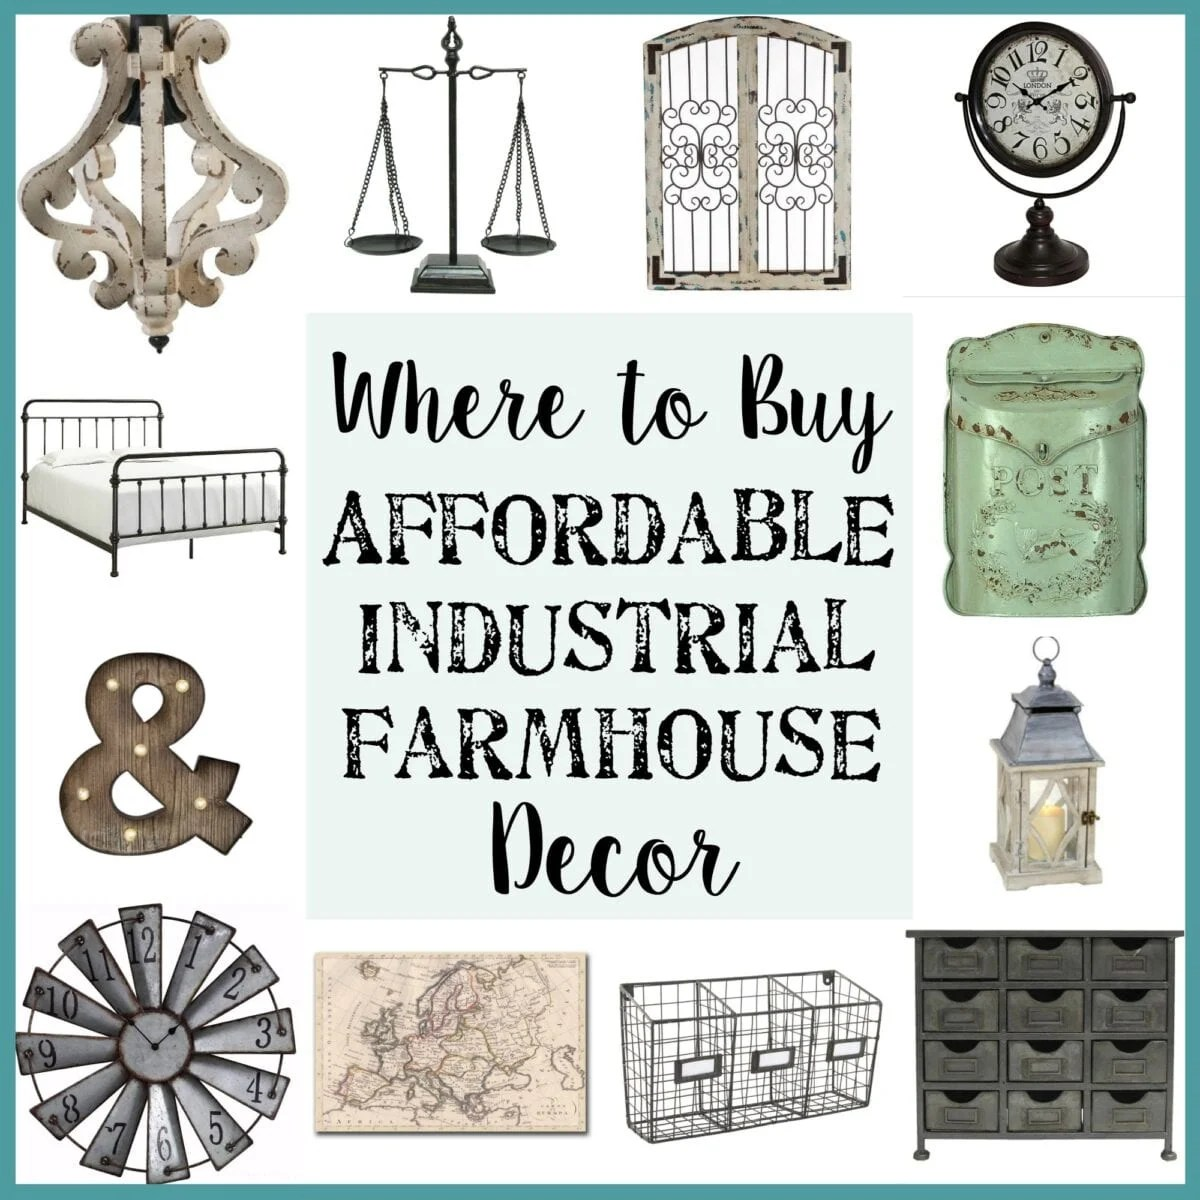 Best Where To Buy Affordable Industrial Farmhouse Decor Bless This Month